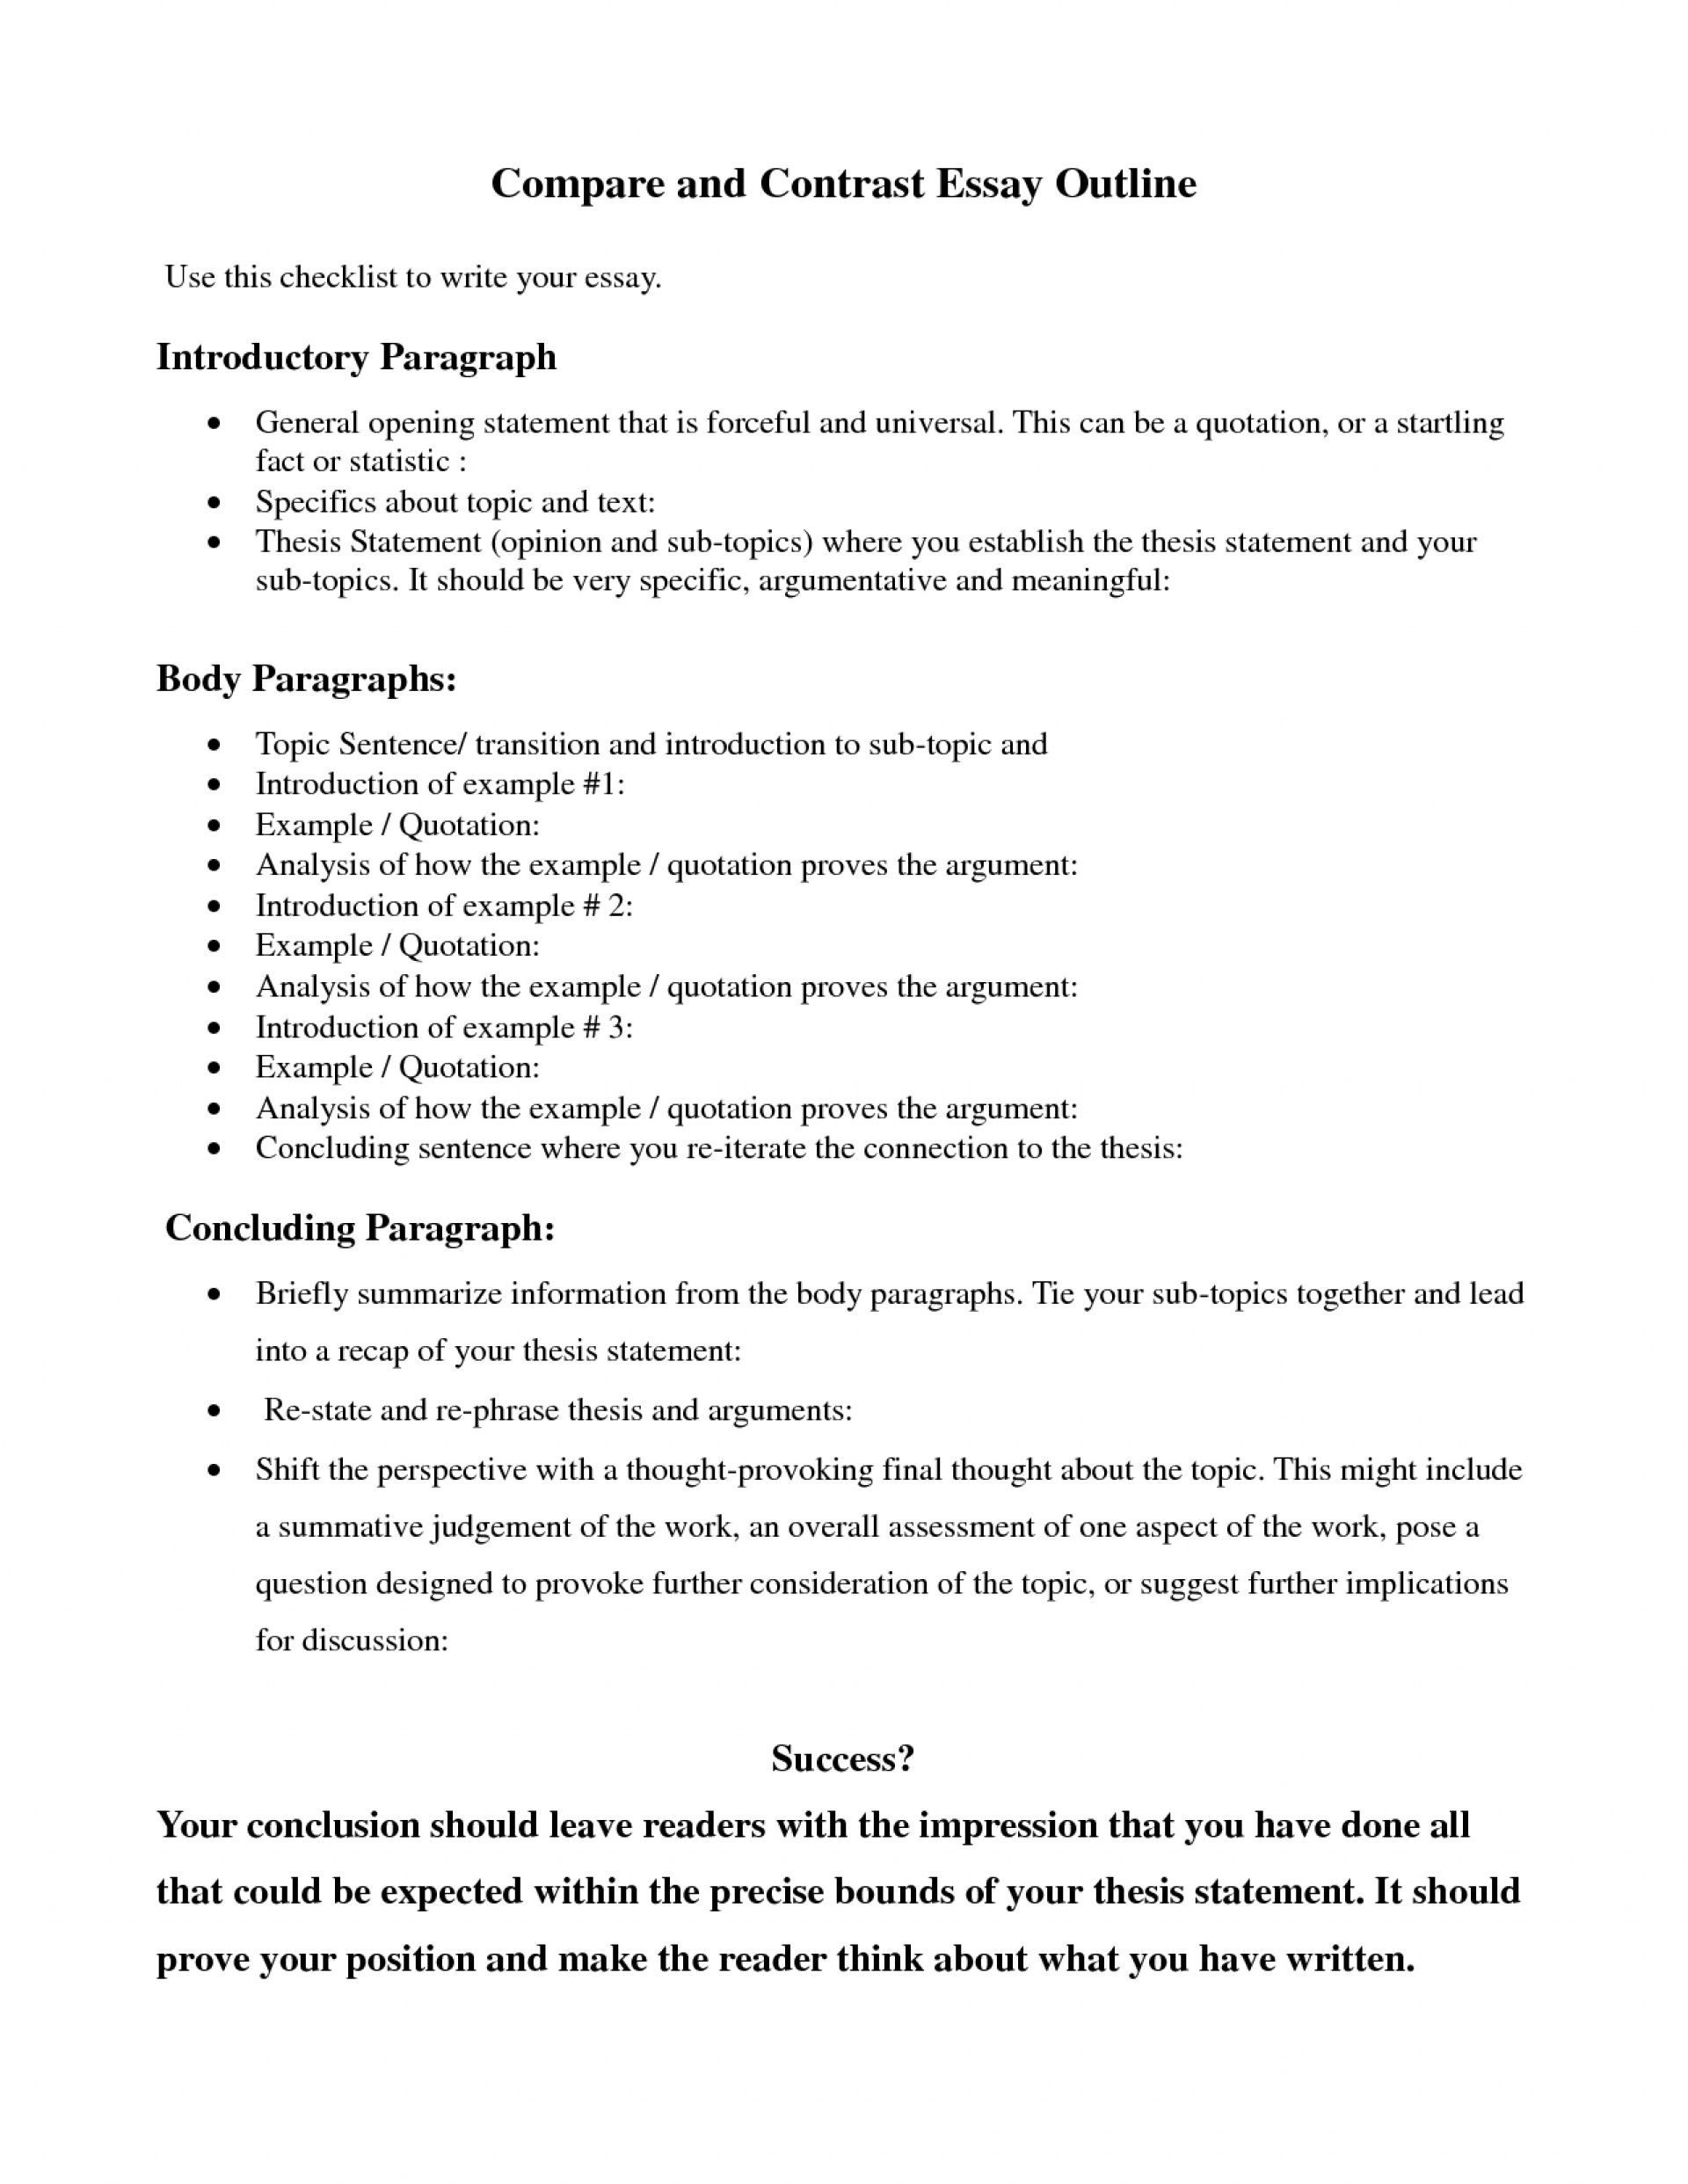 001 Essay Example Comparison And Awful Contrast Topics List Thesis Statement Compare Means 1920